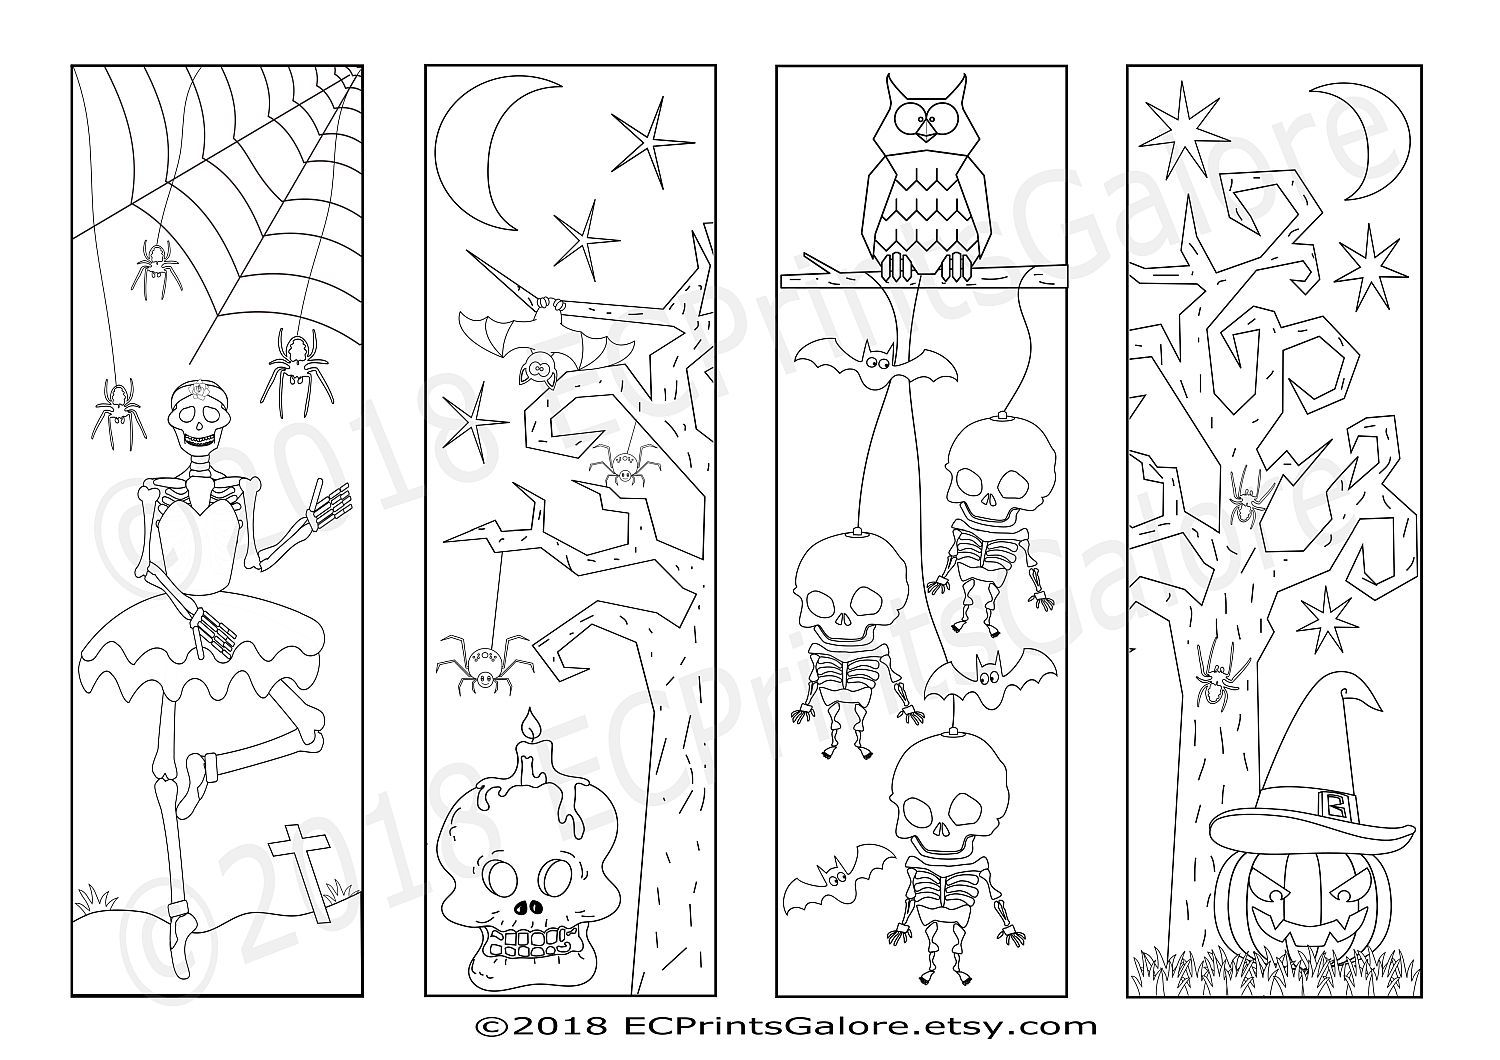 4 Halloween Bookmarks With Skeletons A Pumpkin Spiders Bats And An Owl To Download Print Out An Coloring Bookmarks Halloween Coloring Spider Coloring Page